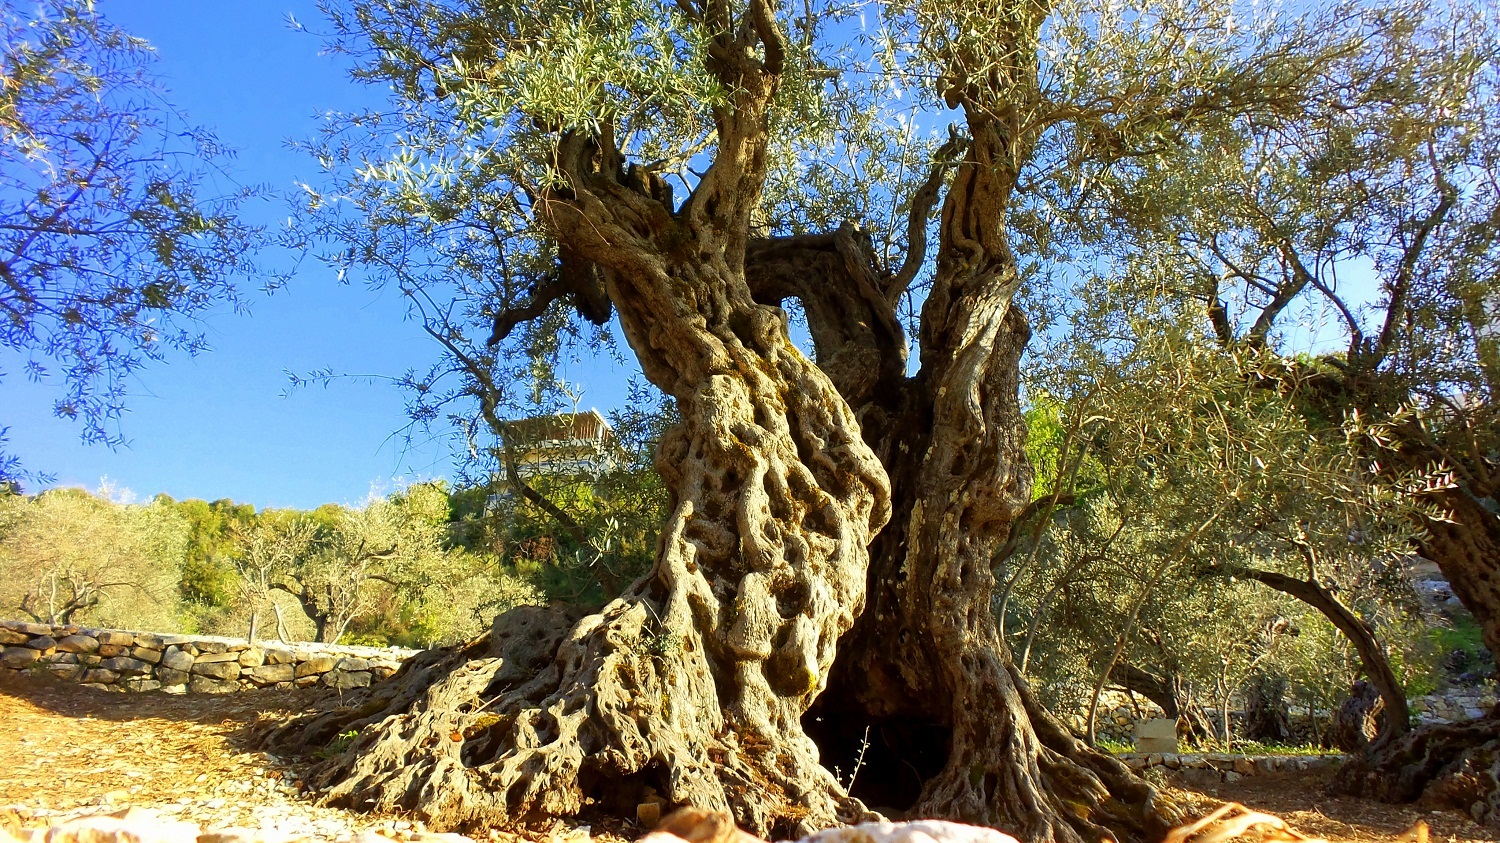 Olive Trees Of Noah Are Among The Oldest Olive Trees In